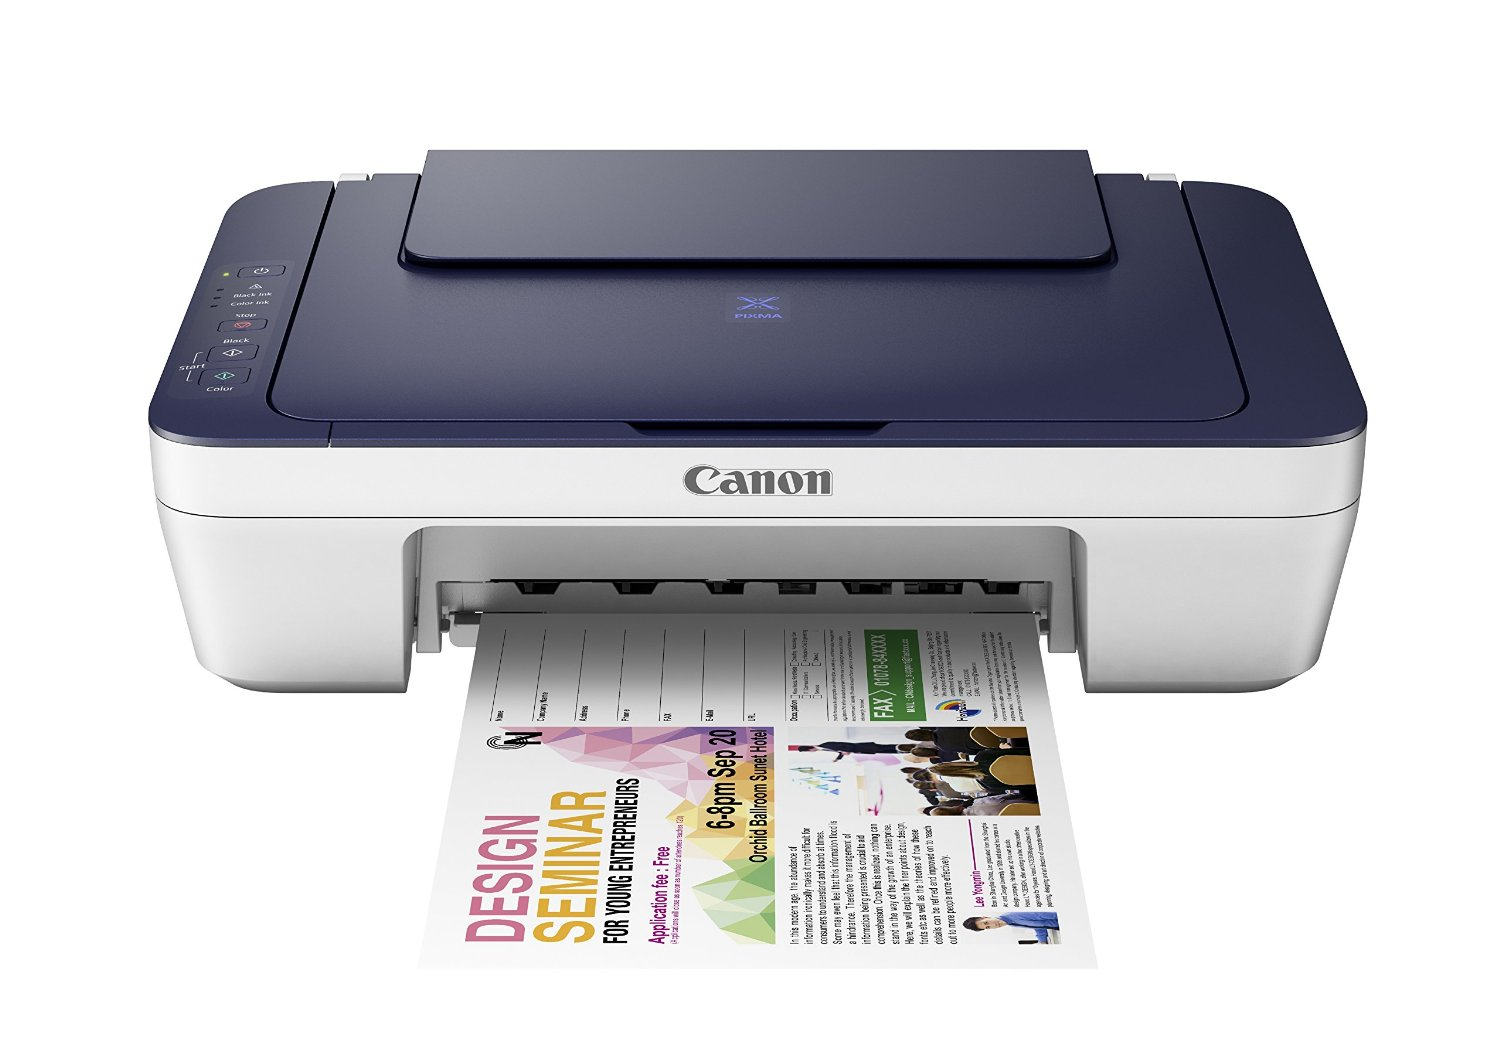 Best PRINTERS in India, Price List, Models, Reviews and